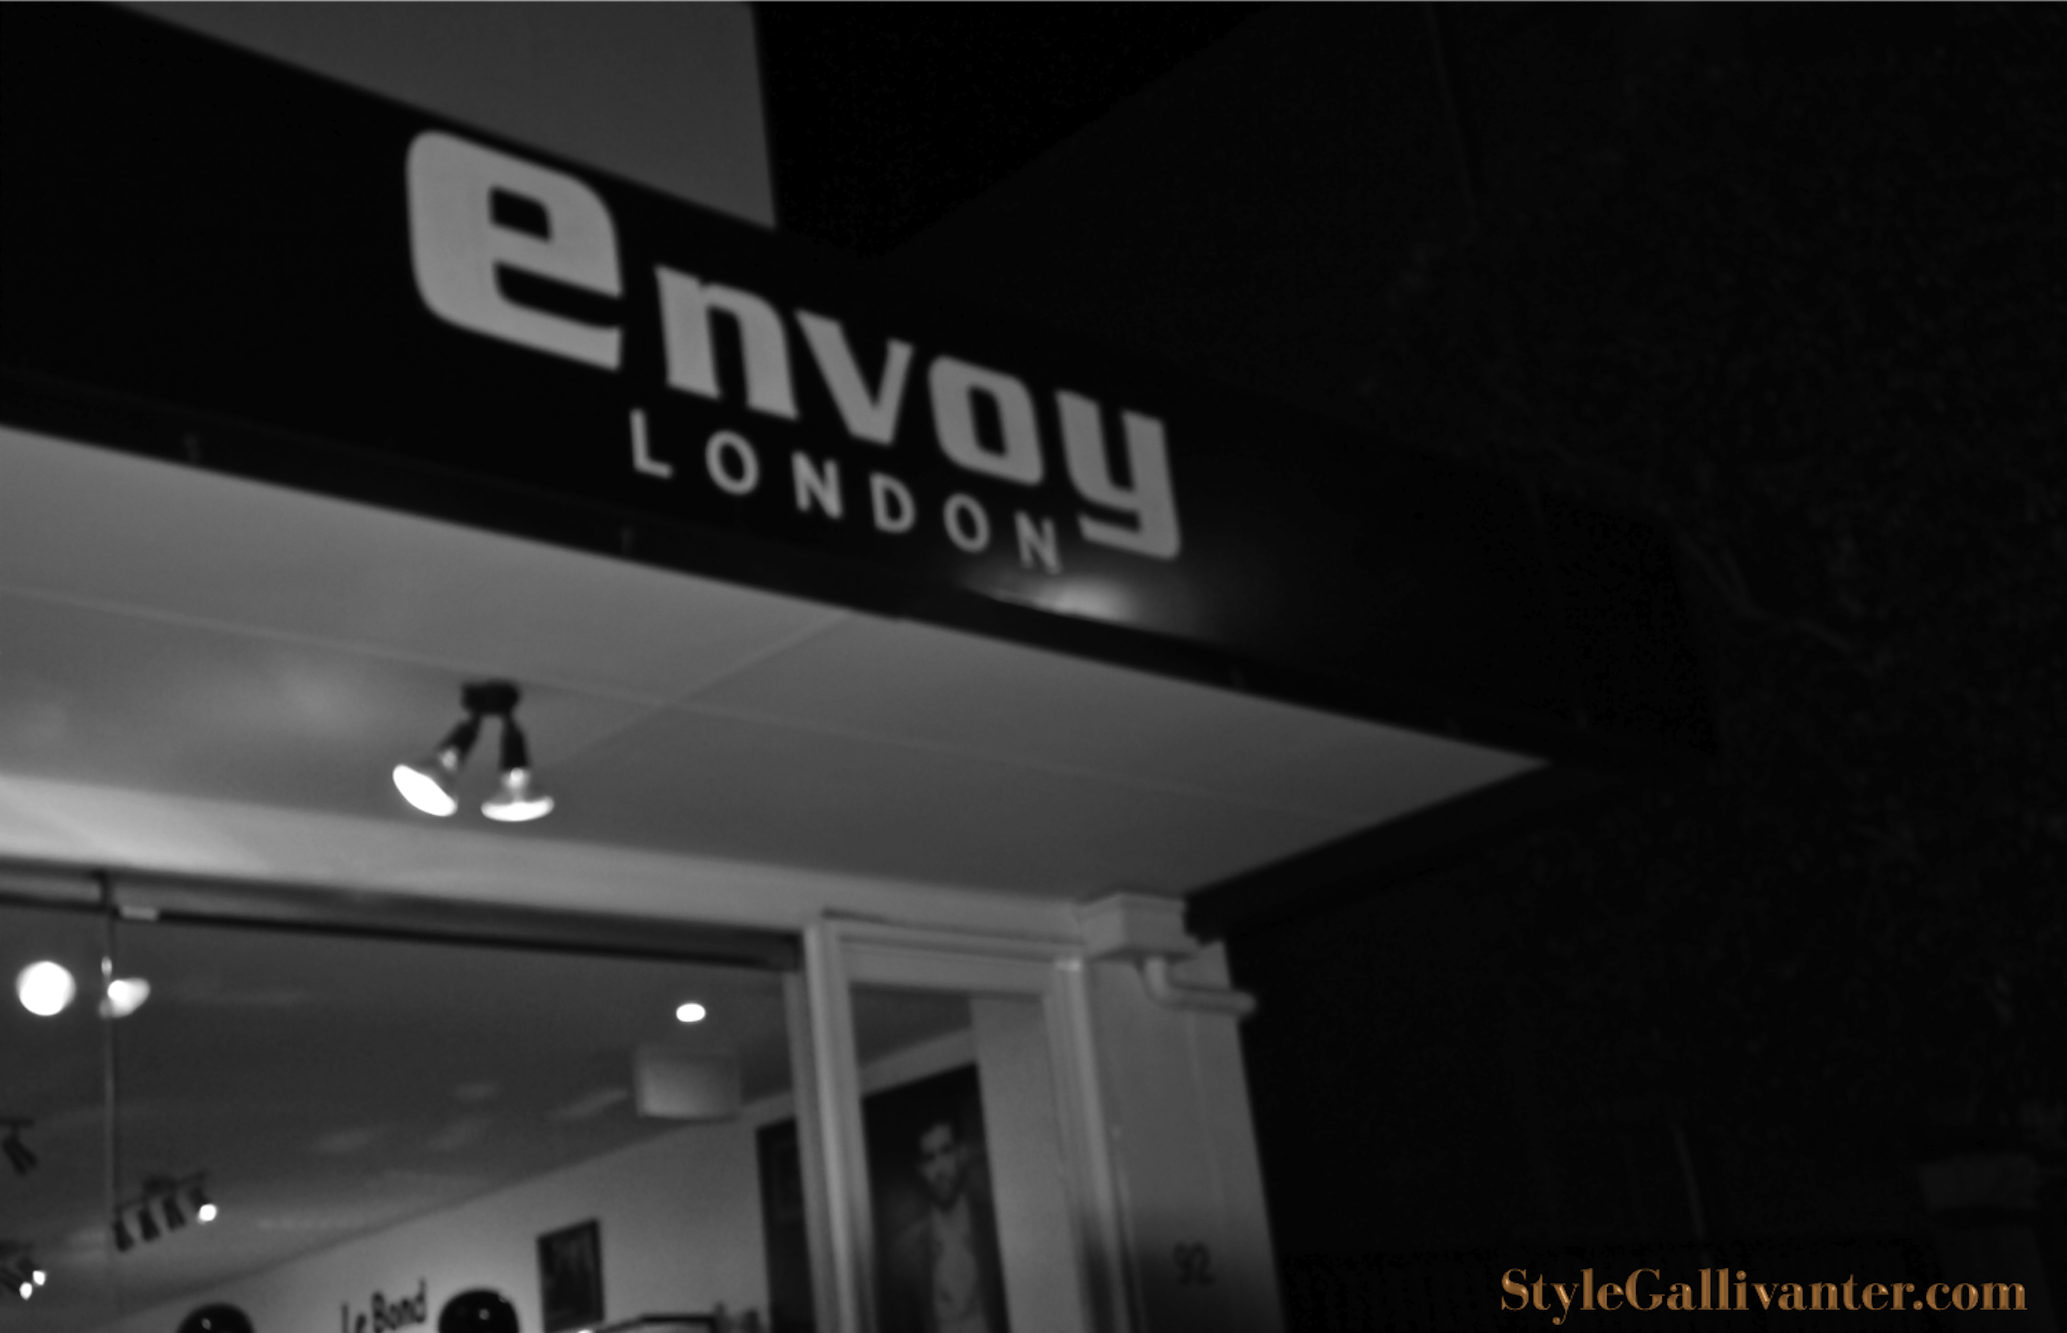 envoy london australia